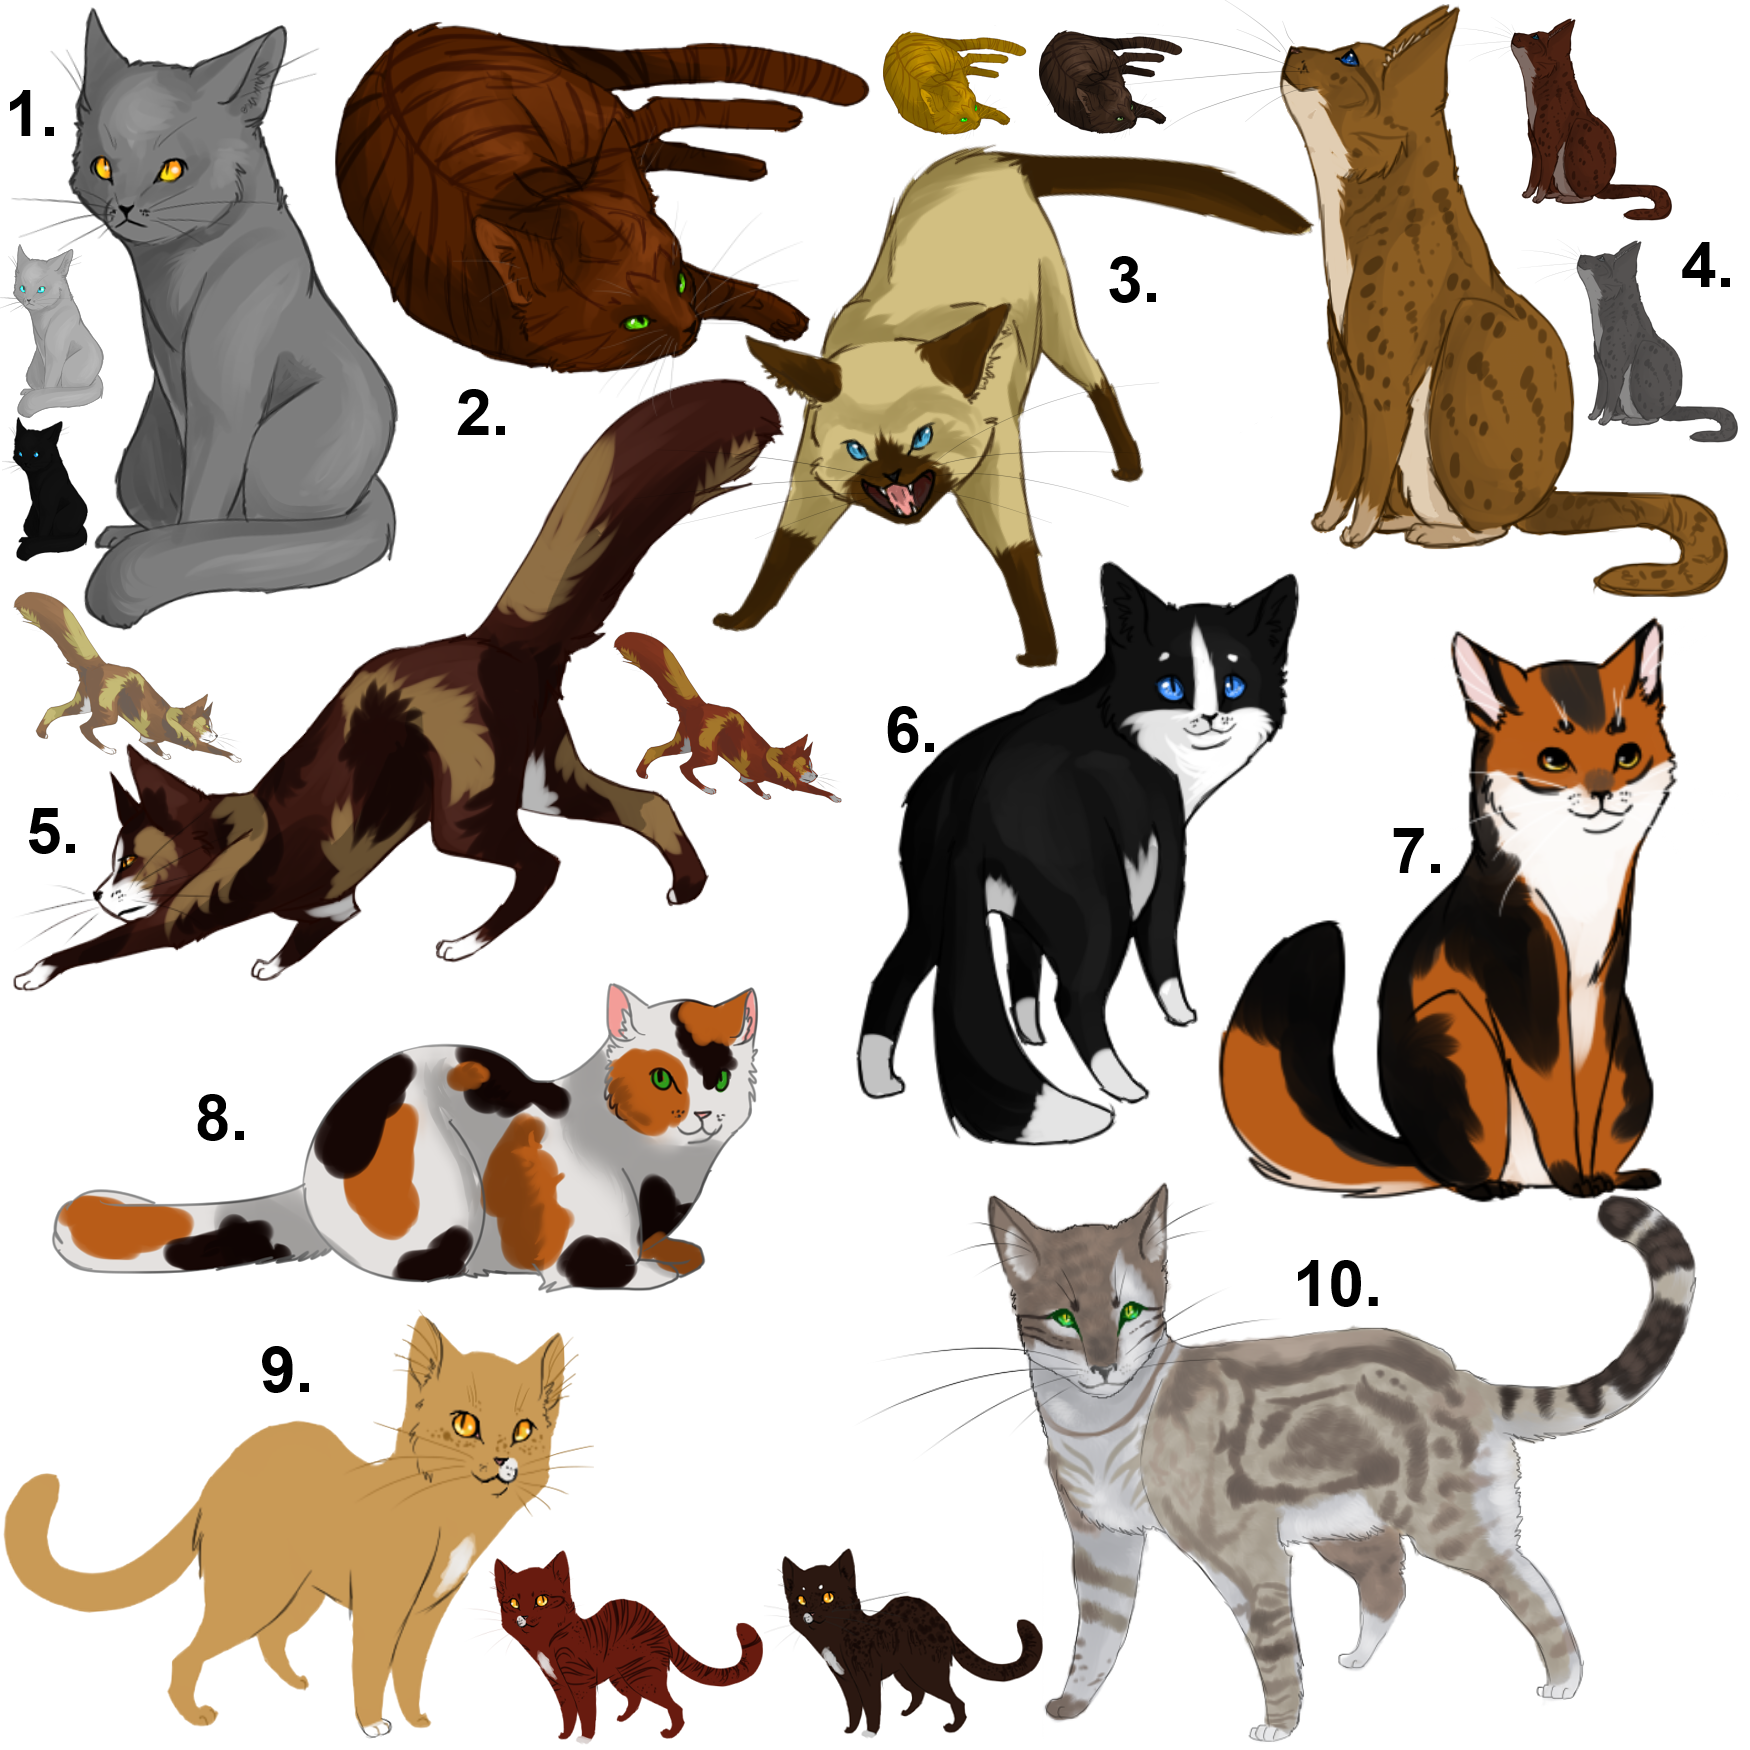 Color of cats fur - Cat_fur_patterns__updated__by_insanitynothing D25sebe